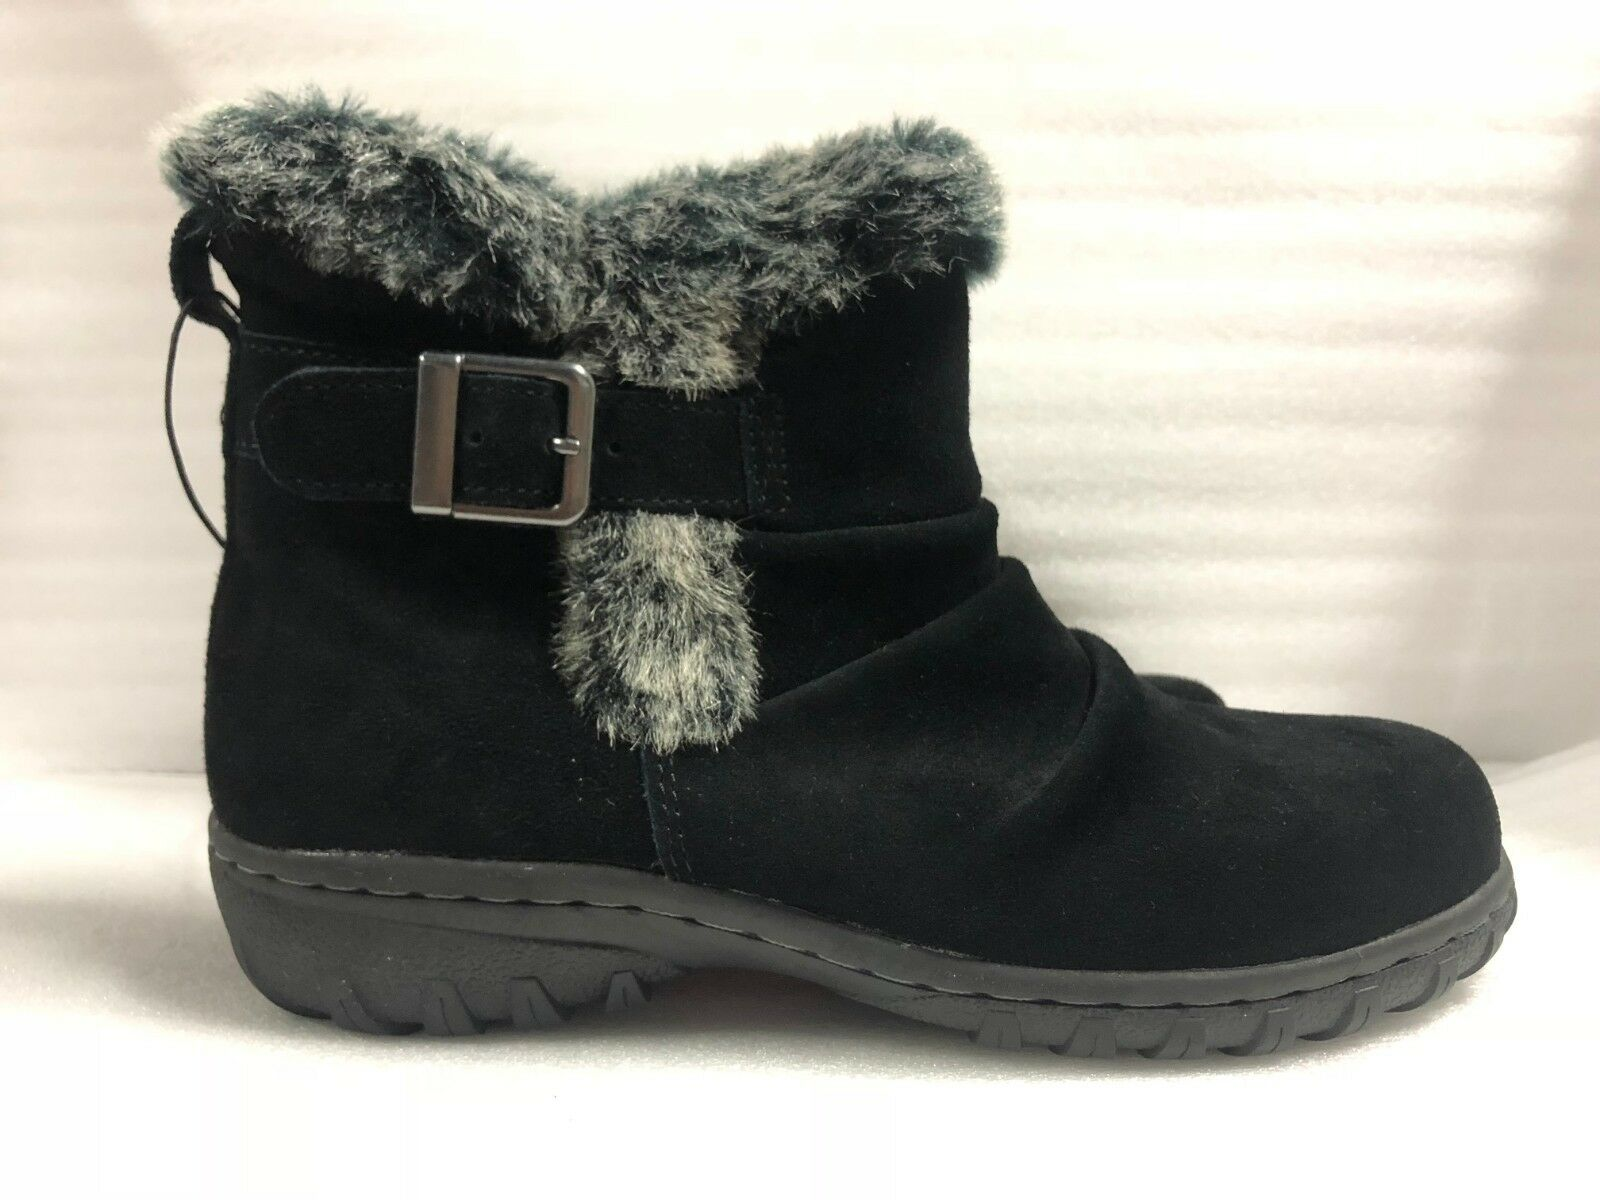 NEW - Khombu Women's Lindsey All Weather Snow Winter Boots Suede PK SIZE / COLOR